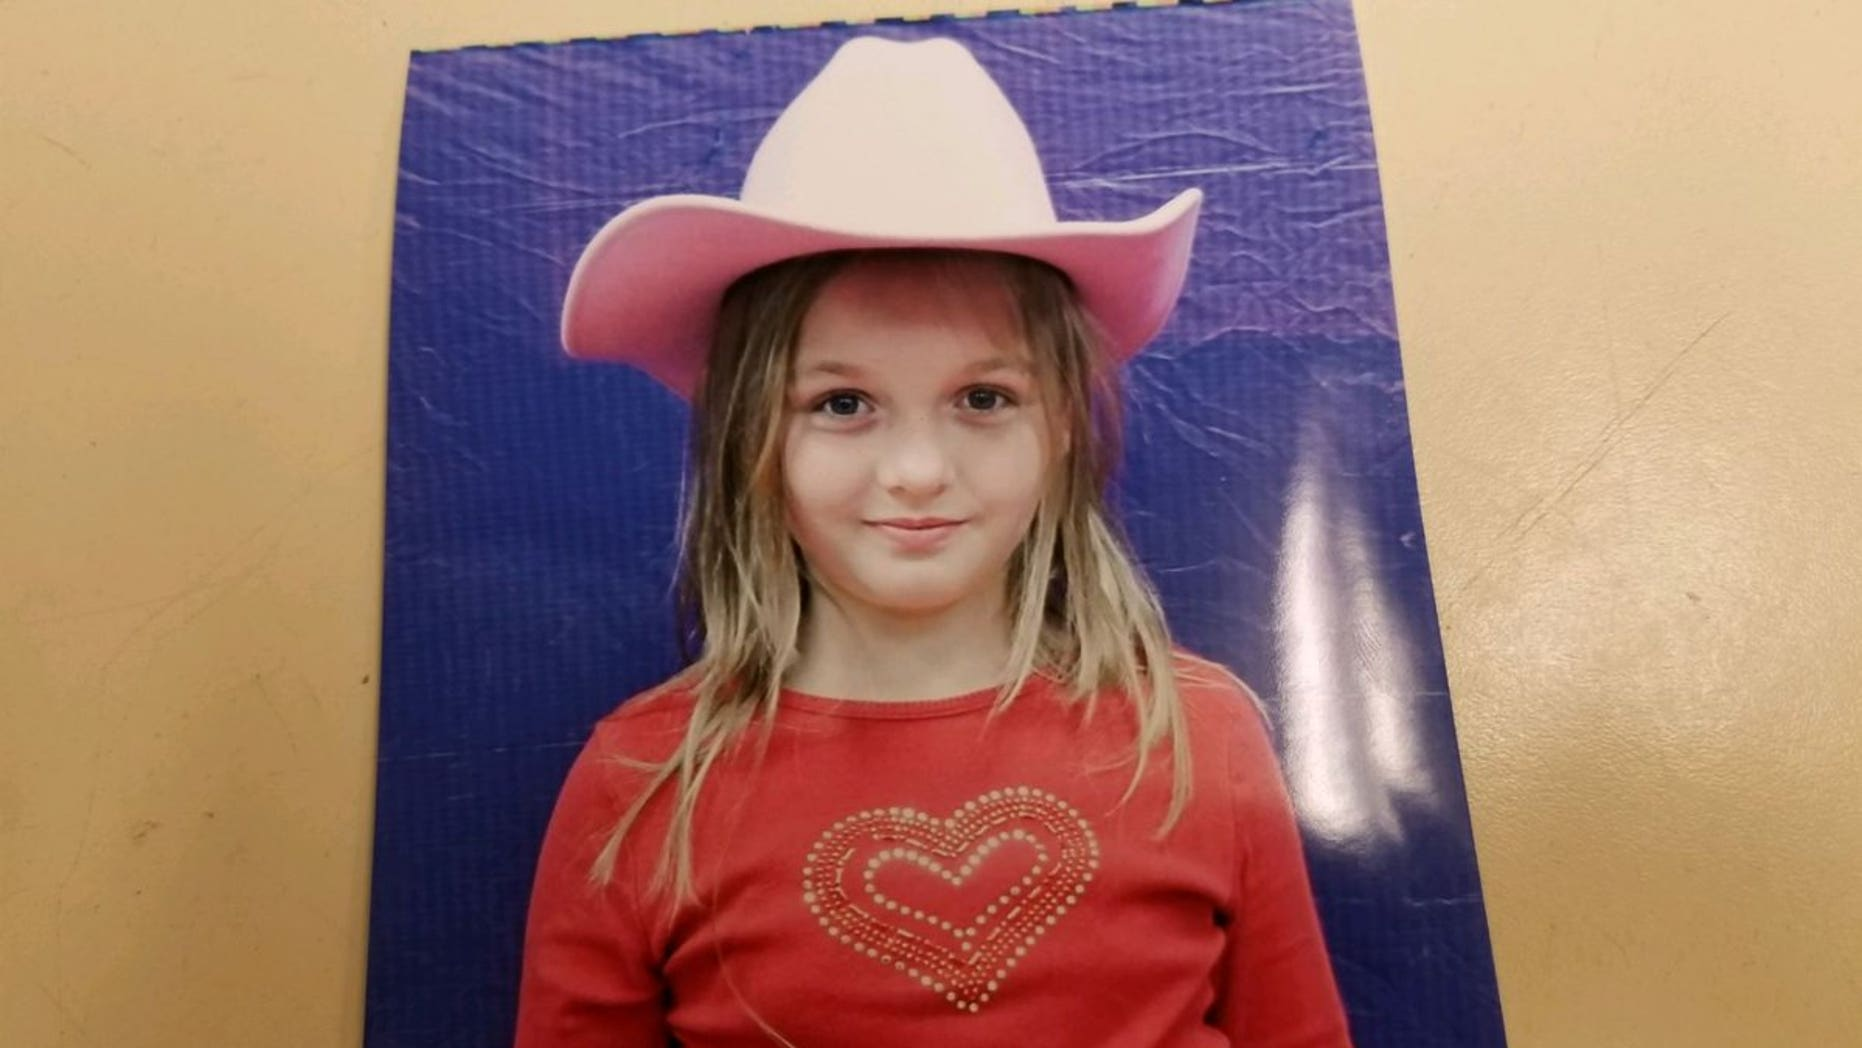 It's doubtful that Serenity Dennard, 9, survived after withdrawal a children's home final Sunday, authorities say. (Pennington County Sheriff's Office)